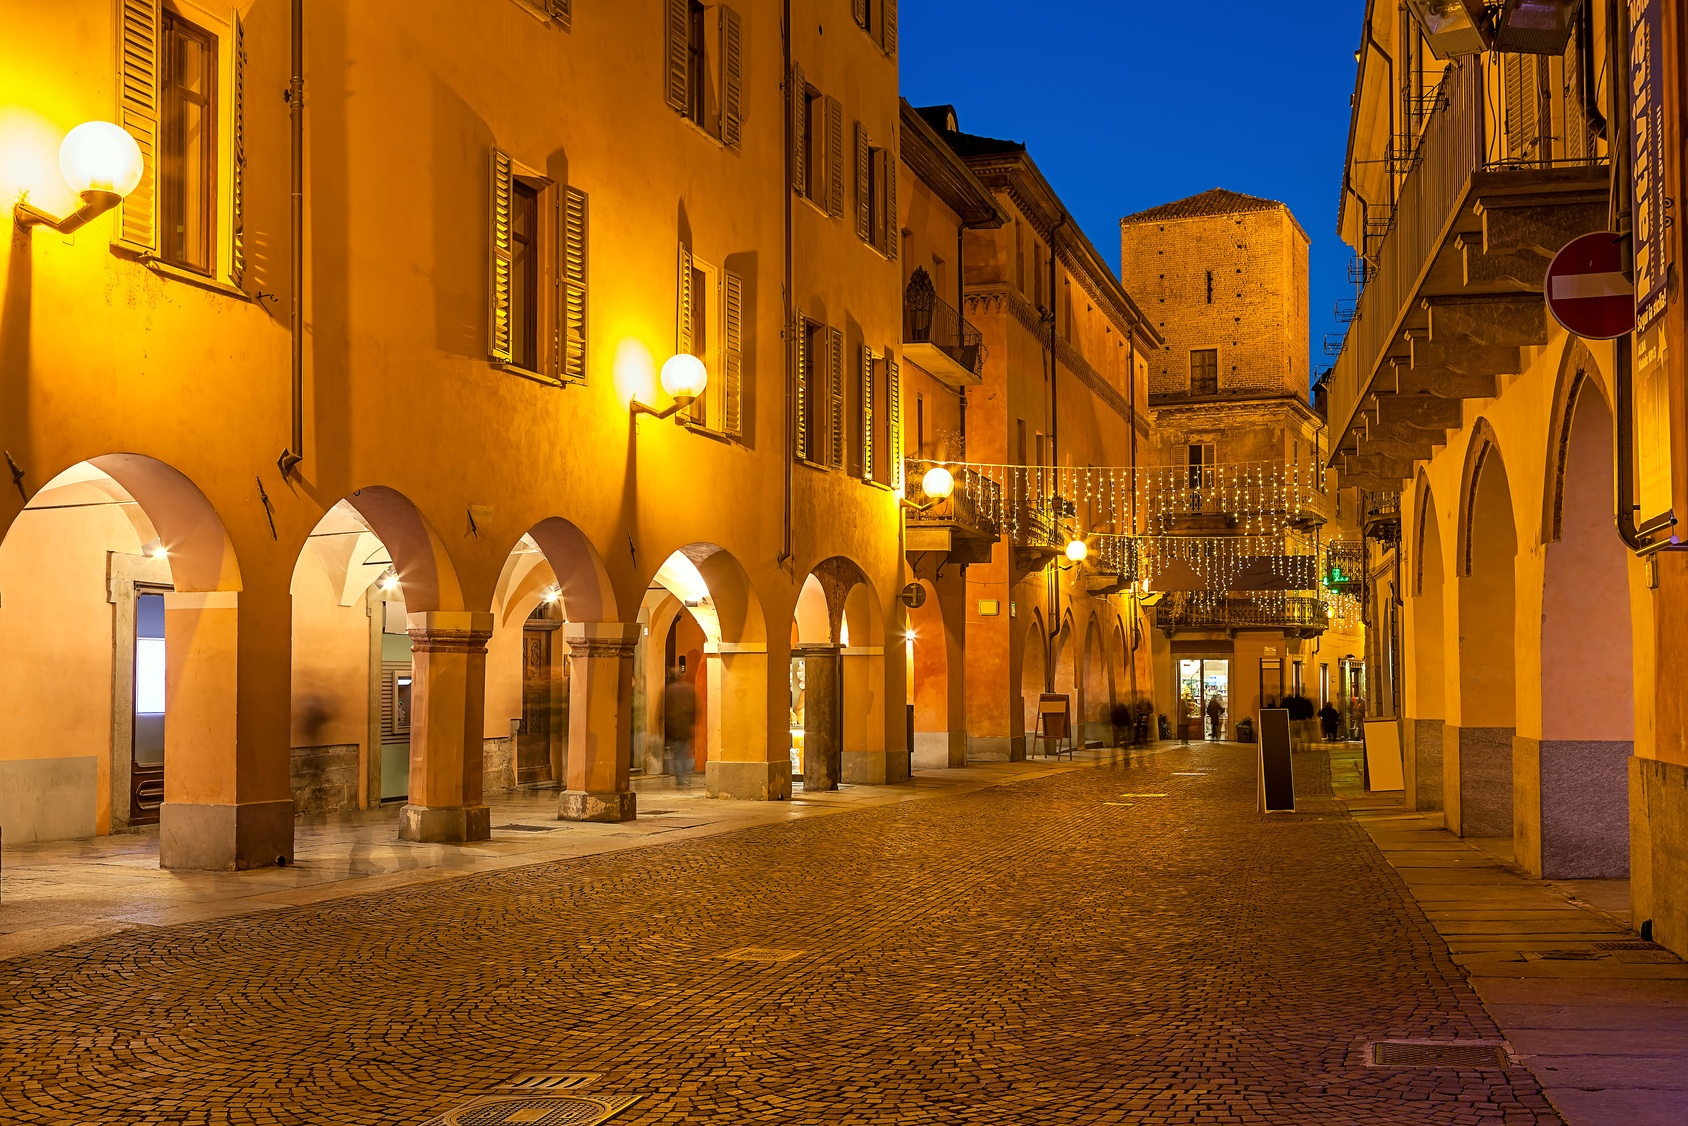 full-day trips to other locations in italy